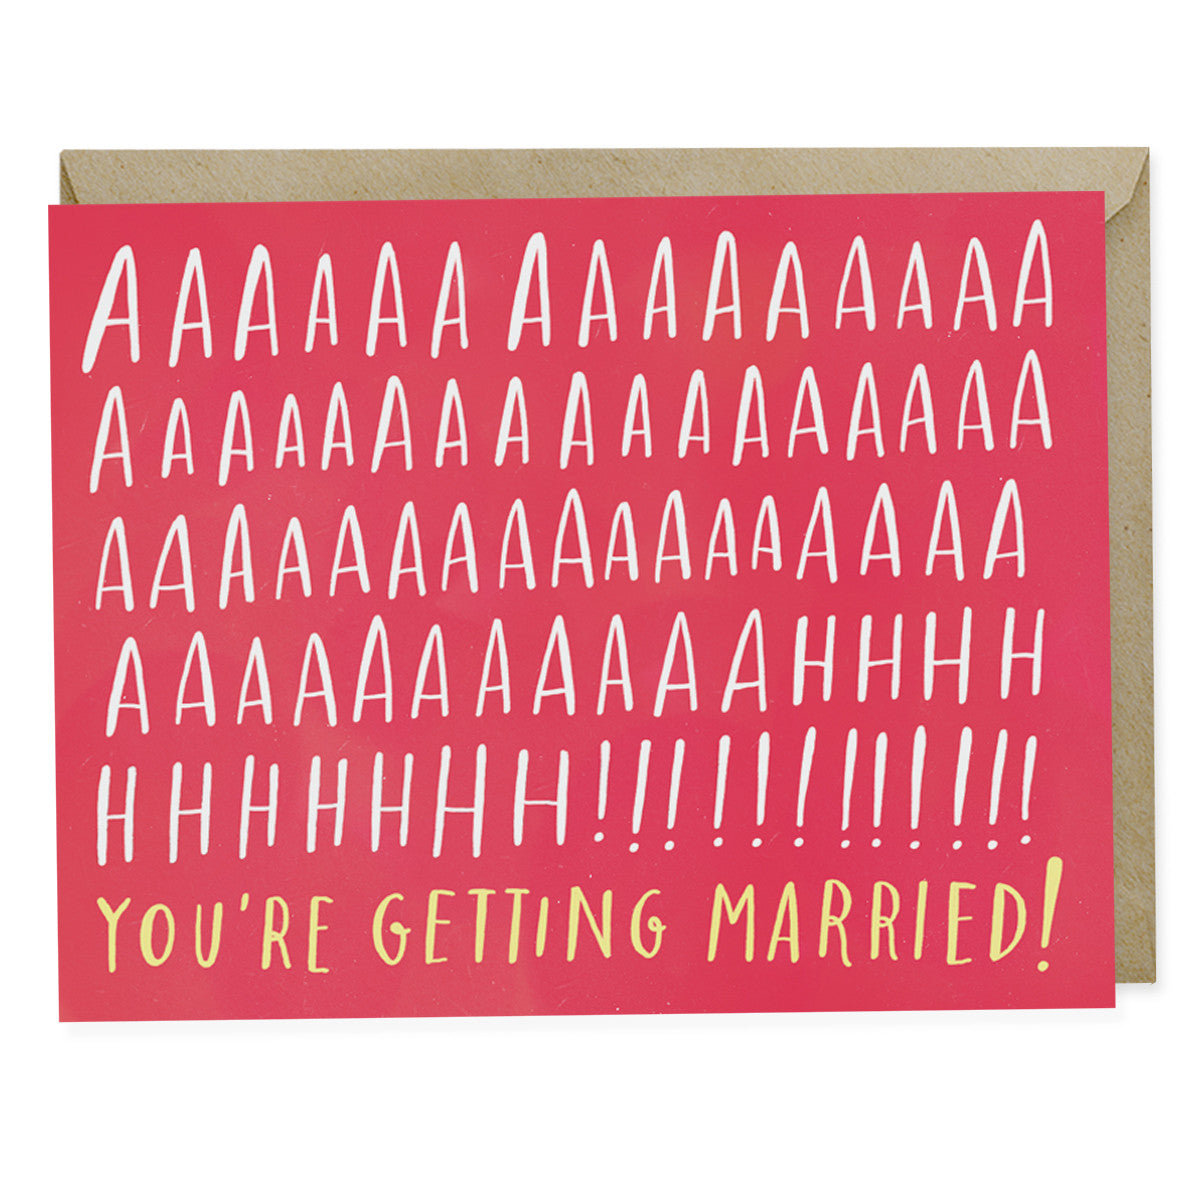 Aaaah! Married Engagement Card